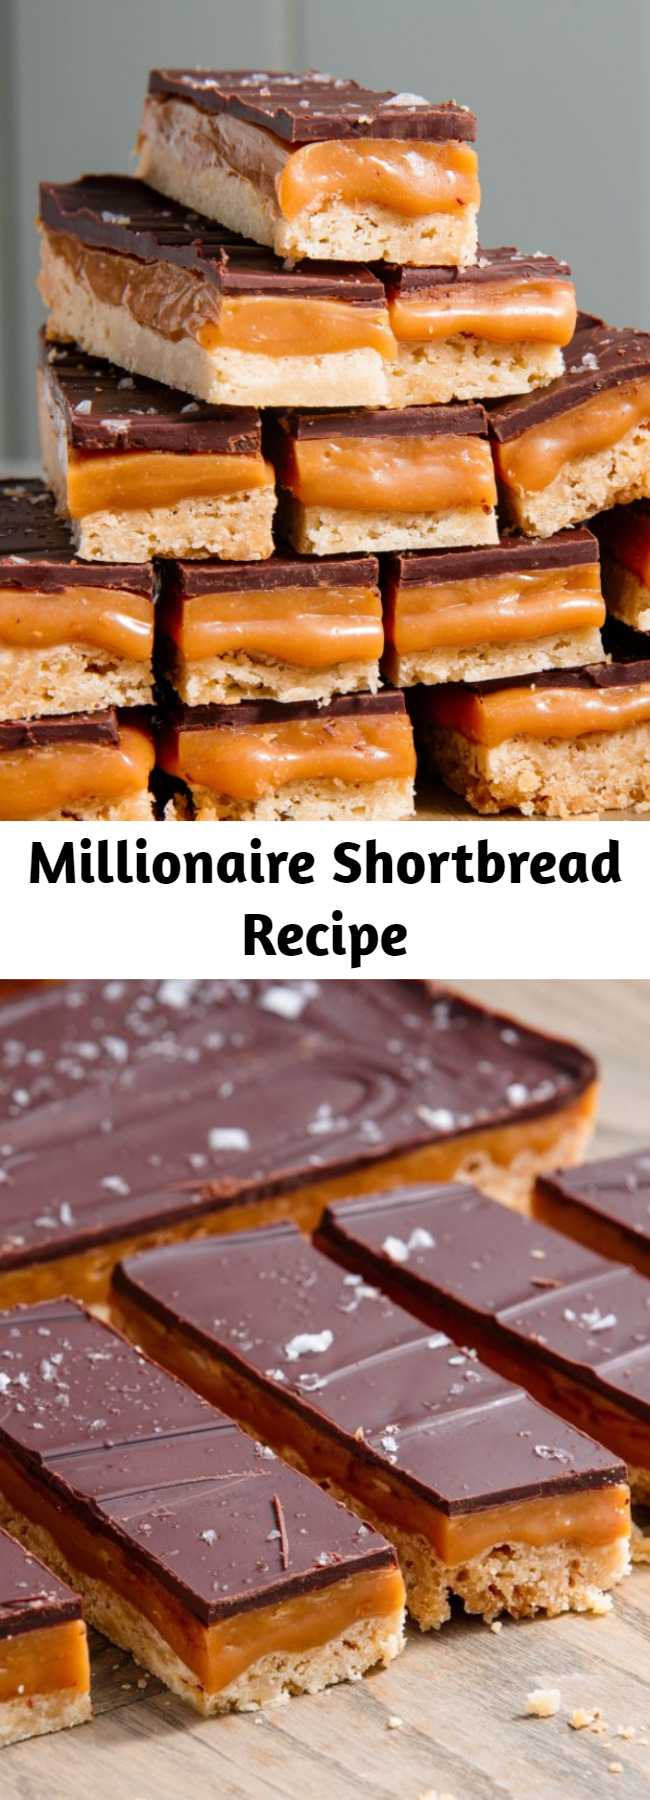 Millionaire Shortbread Recipe - It may look impressive (and daunting), but this classic Millionaire Shortbread recipe is insanely easy to bake at home. It starts with a perfect and simple buttery shortbread base. On top: a 2-ingredient caramel that starts with pre-made candies. To top it all off, a layer of decadent chocolate sprinkled with flaky sea salt.